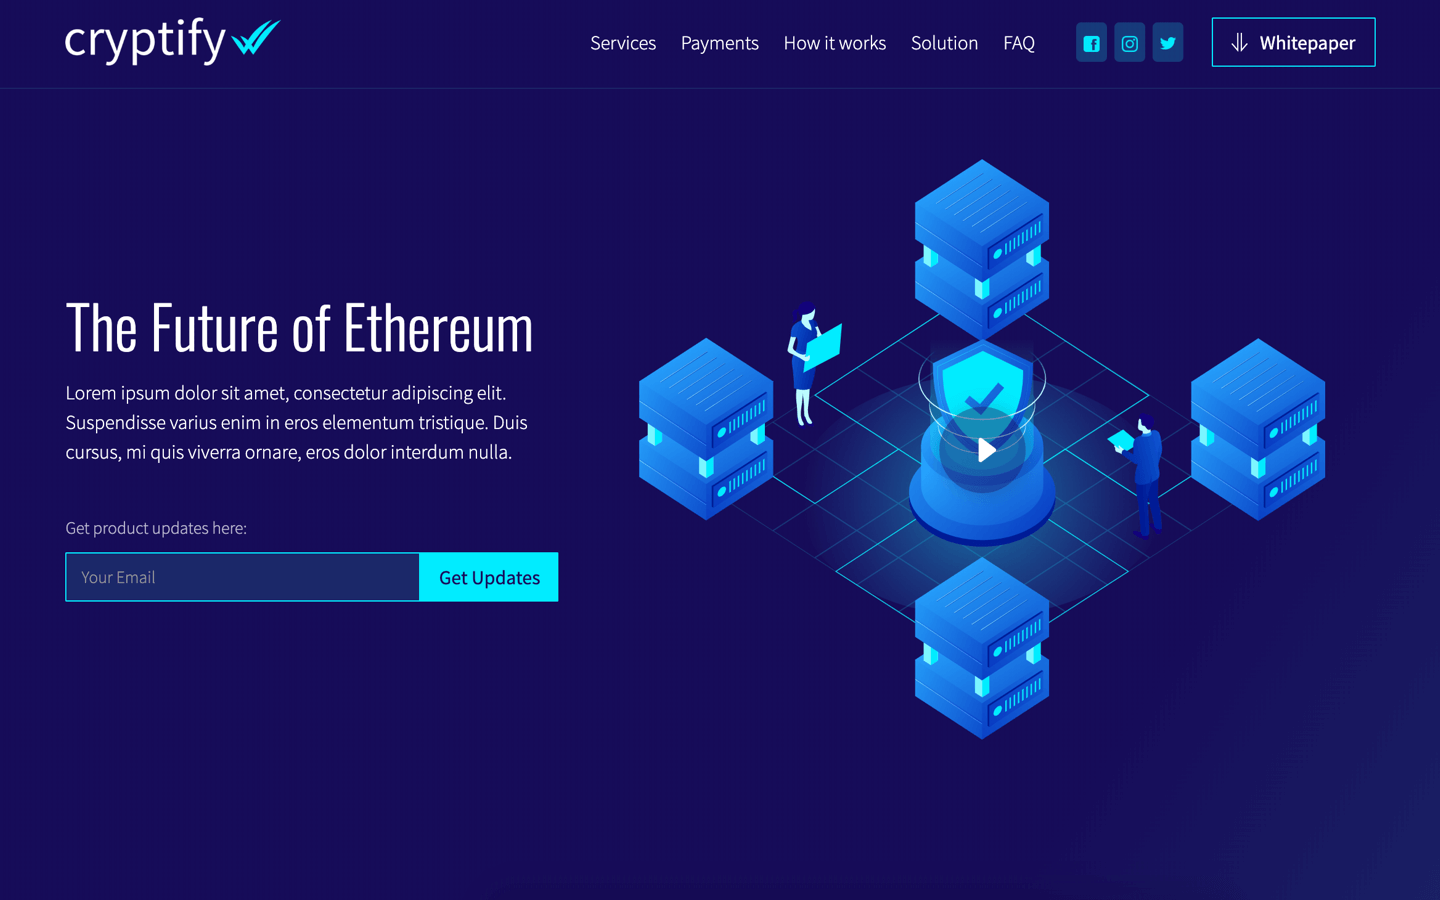 Cryptify